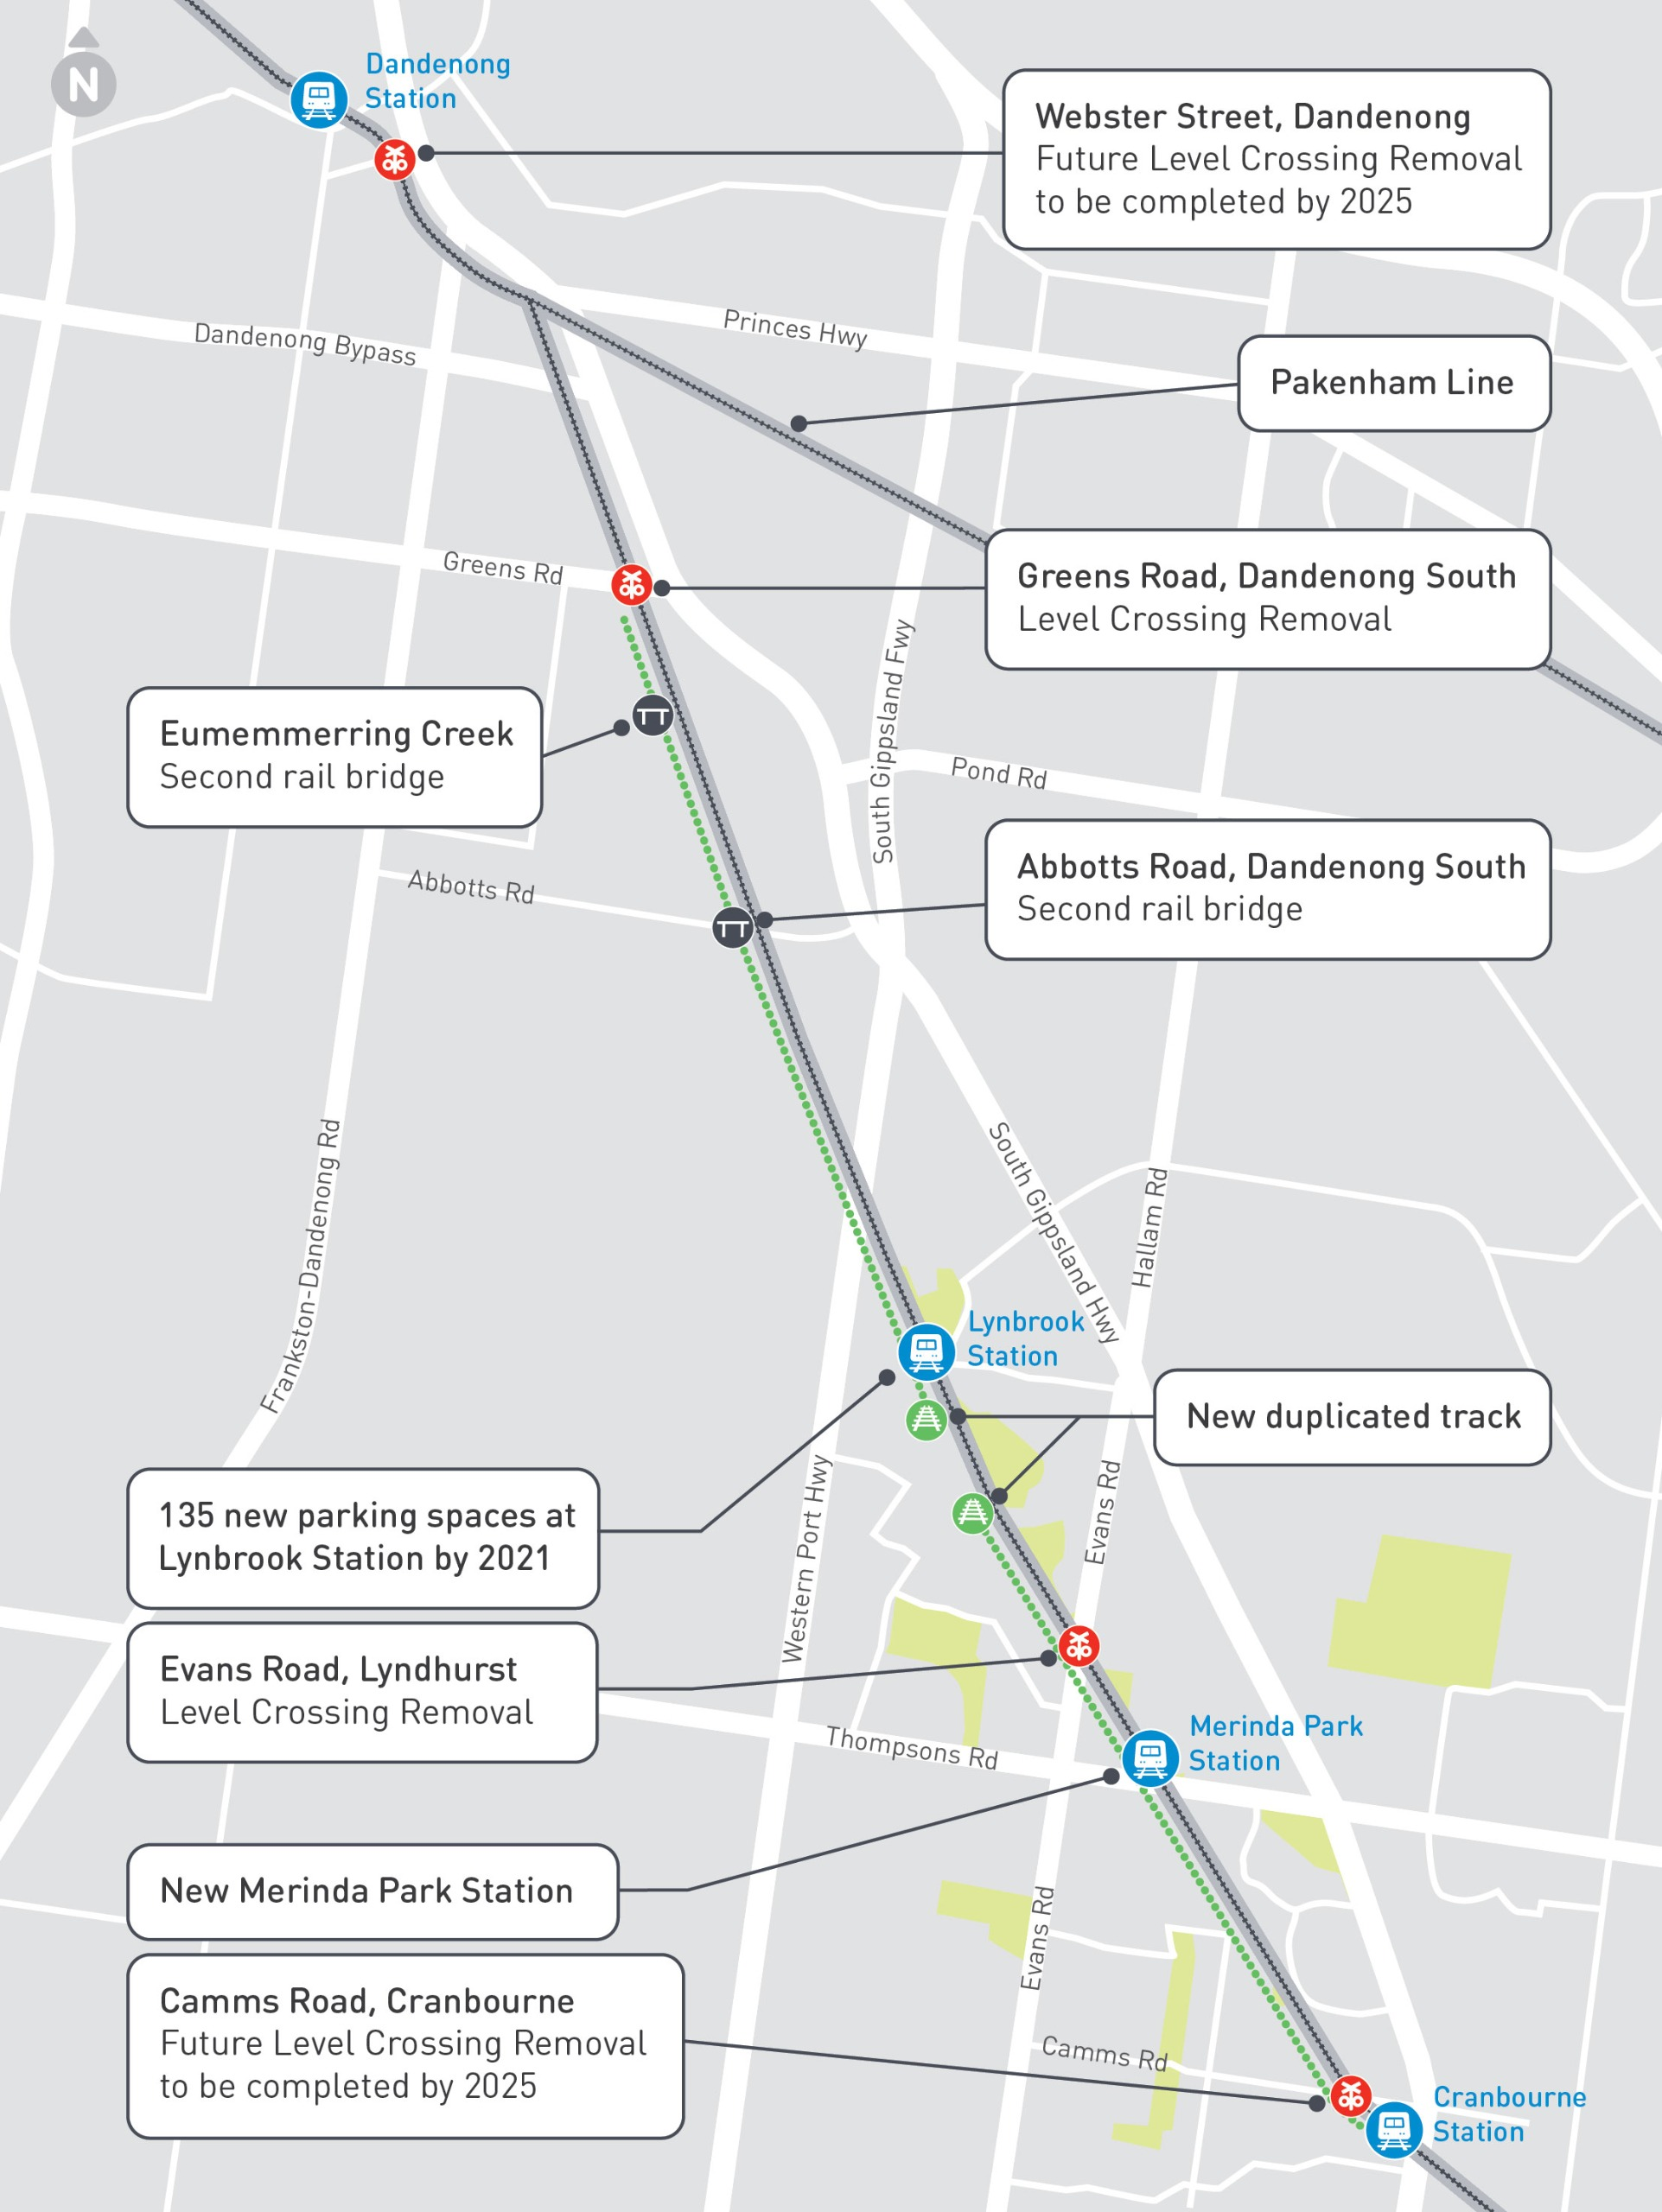 Running north to south, the above/below map shows key Cranbourne Line Upgrade elements, including: - Webster Street, Dandenong. Future Level Crossing Removal to be completed by 2025 - Greens Road, Dandenong South, Level Crossing Removal - Installing a sec